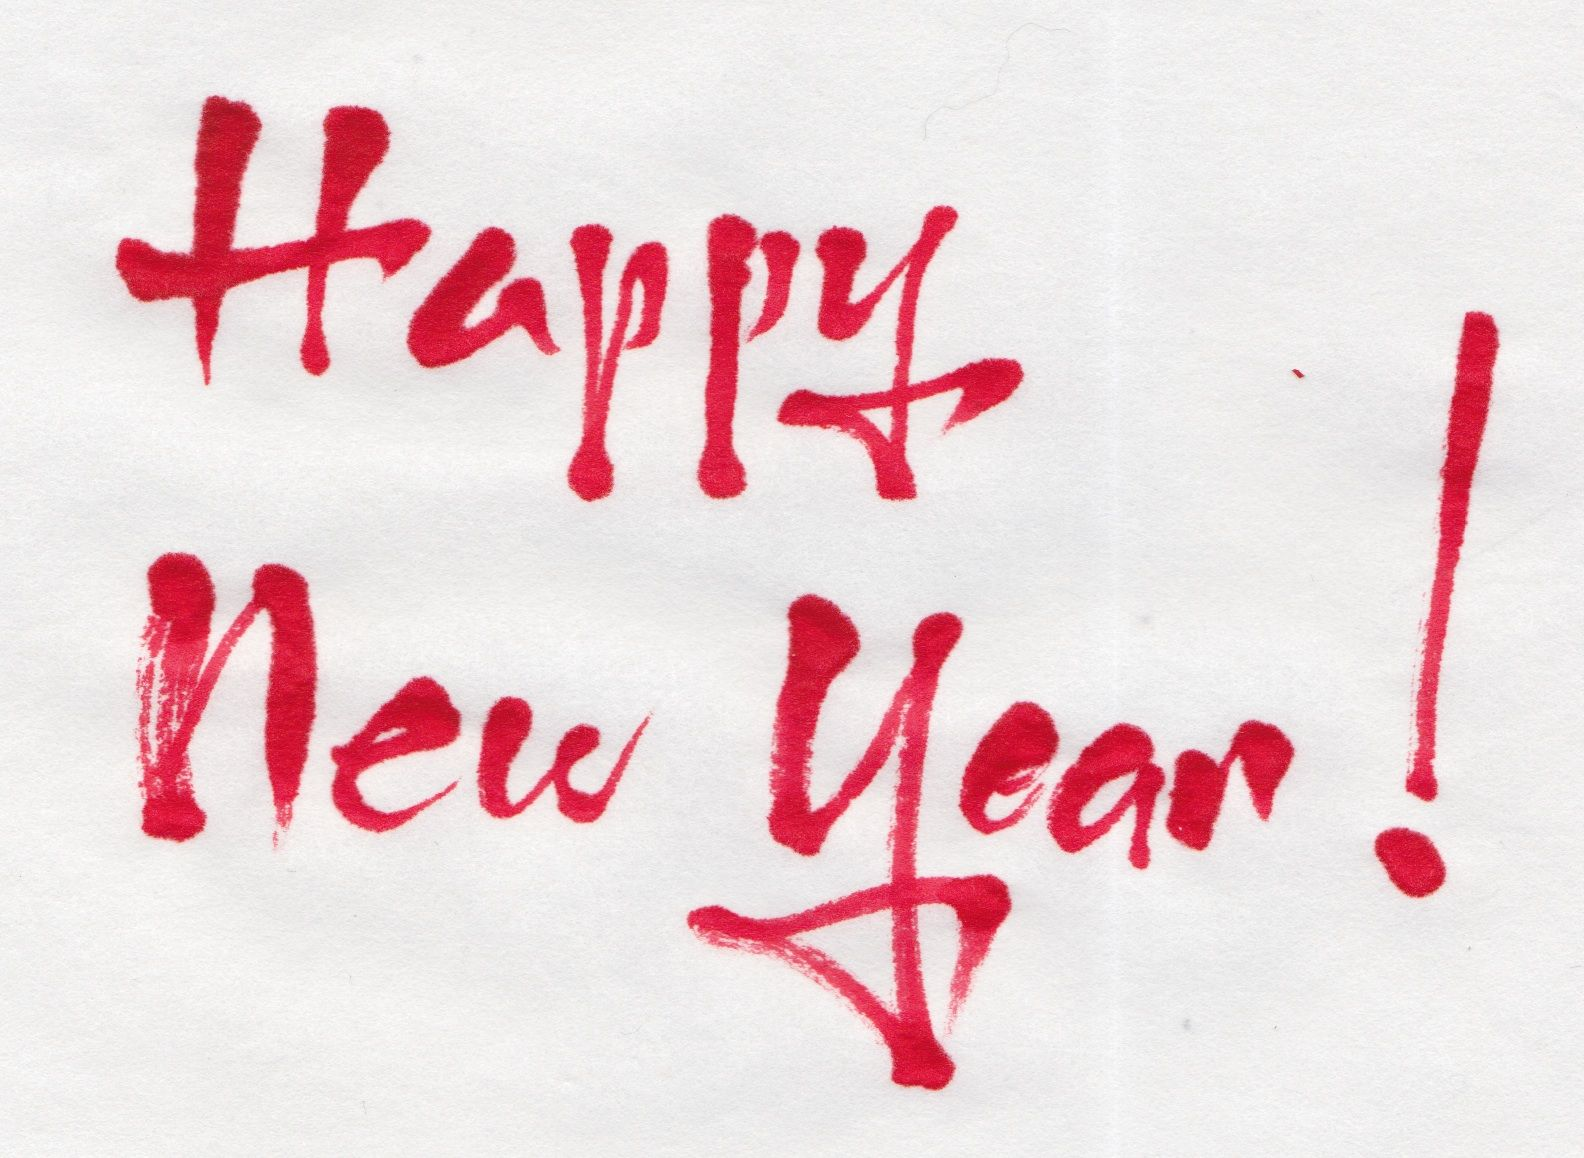 Calligraphy In The Vietnamese Thu Phap Style For Tet The Celebration Of New Year In E Holiday Calligraphy Happy Wedding Anniversary Cards Happy New Years Eve